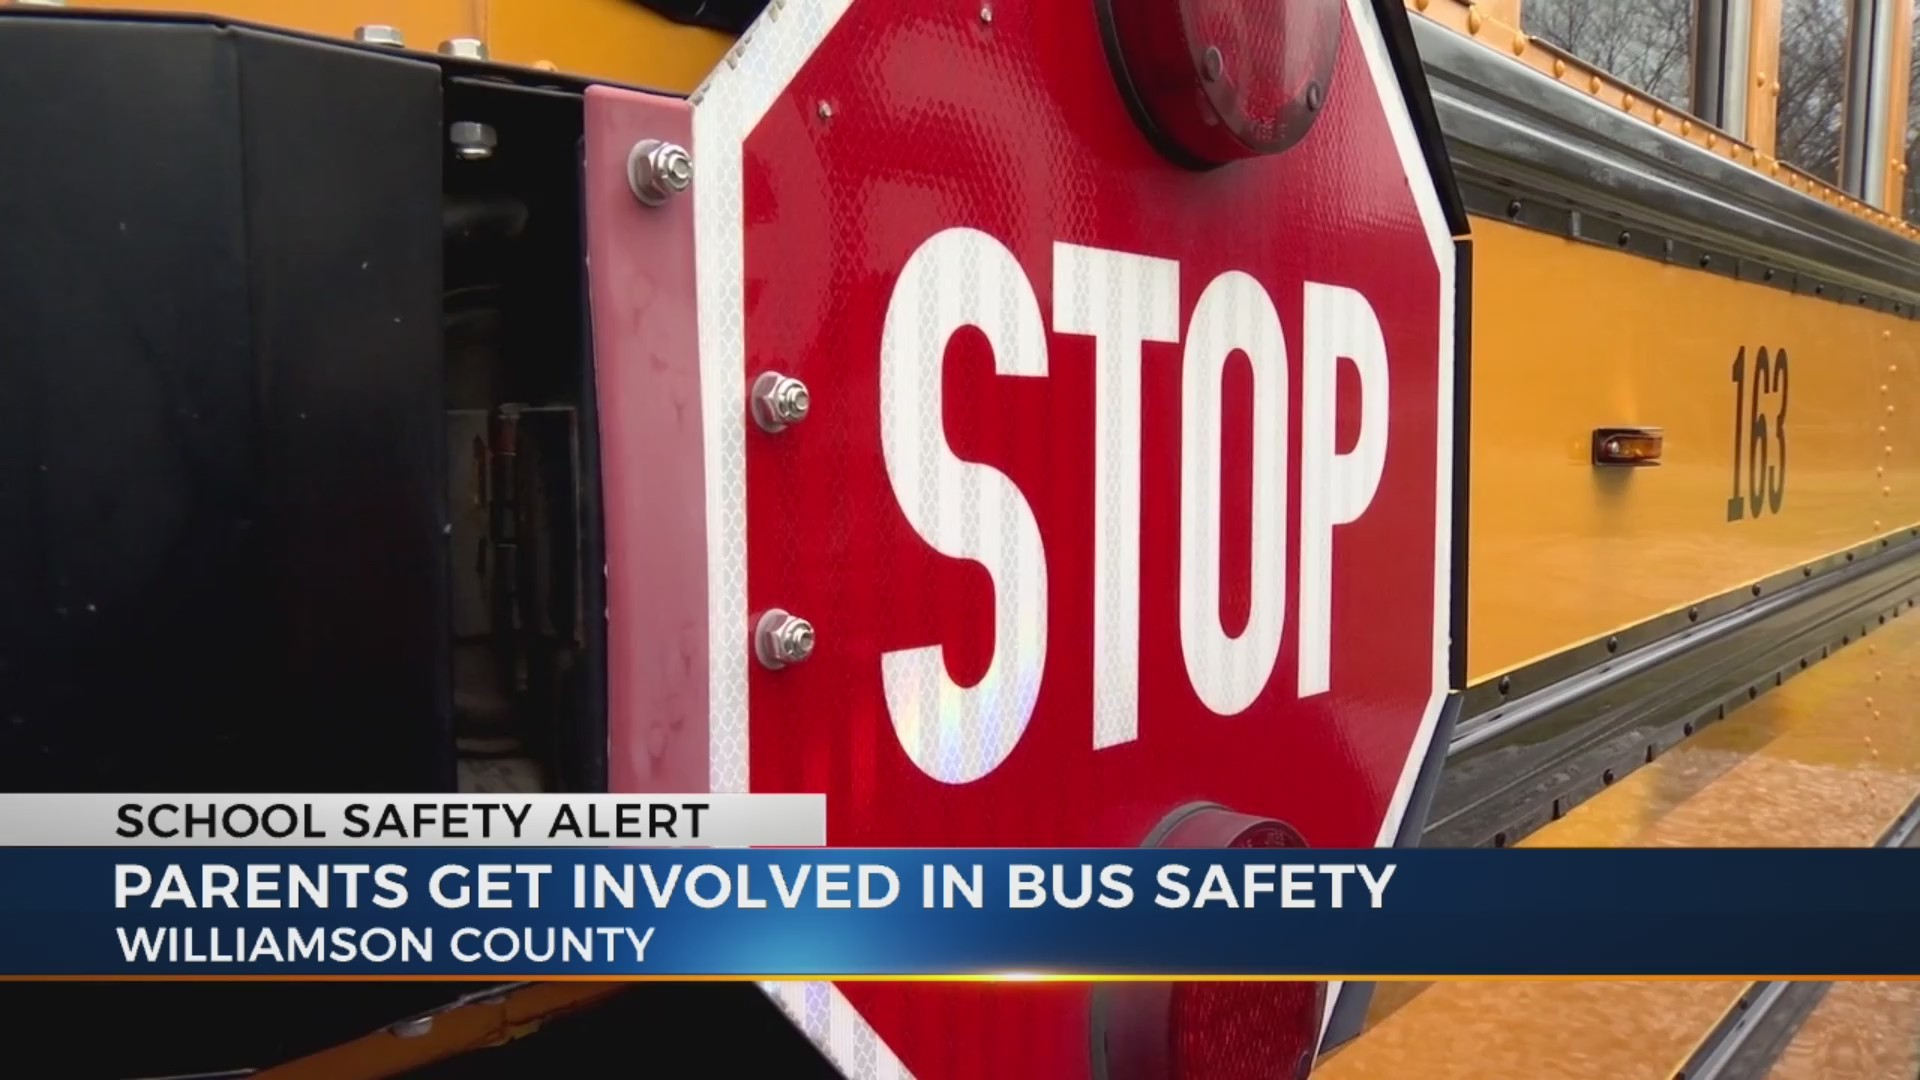 Williamson_County_Schools_and_law_enforc_0_20190115225903